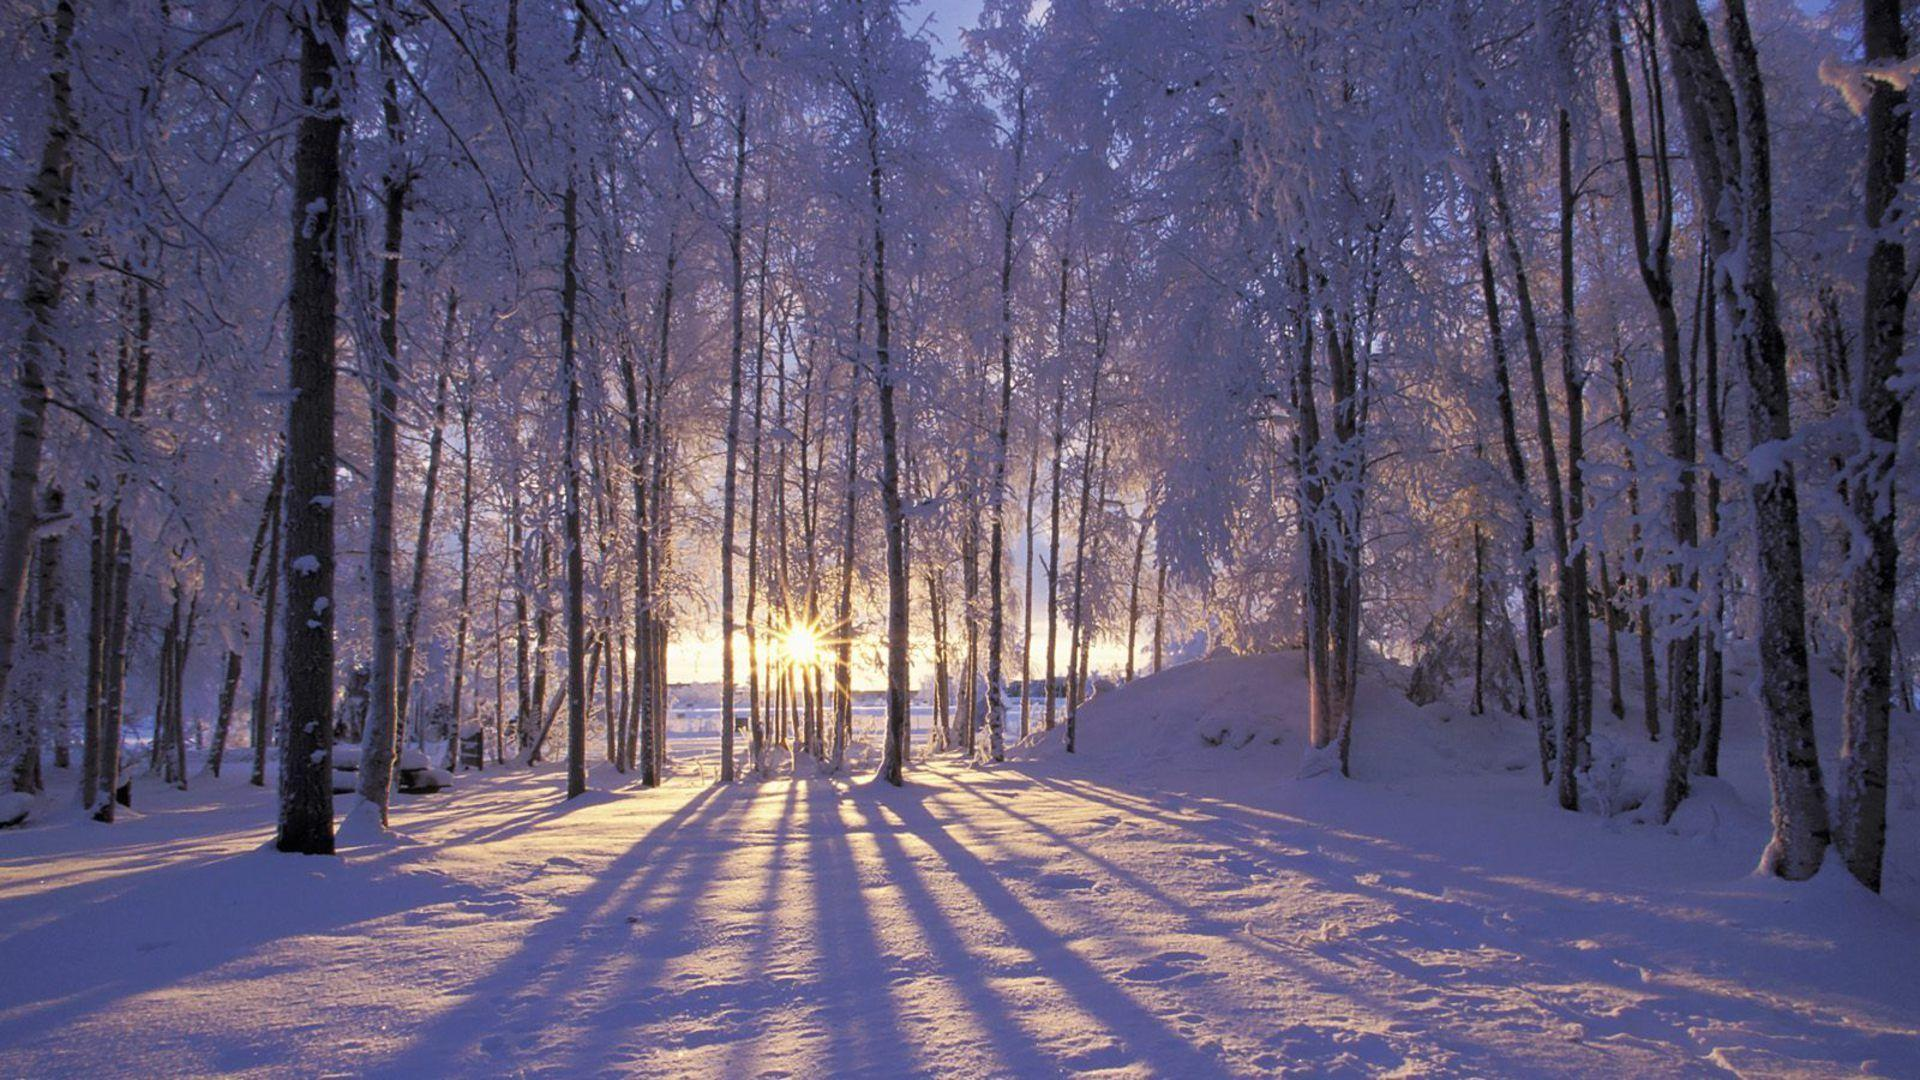 Sunrise At Winter Wallpaper - 1648800